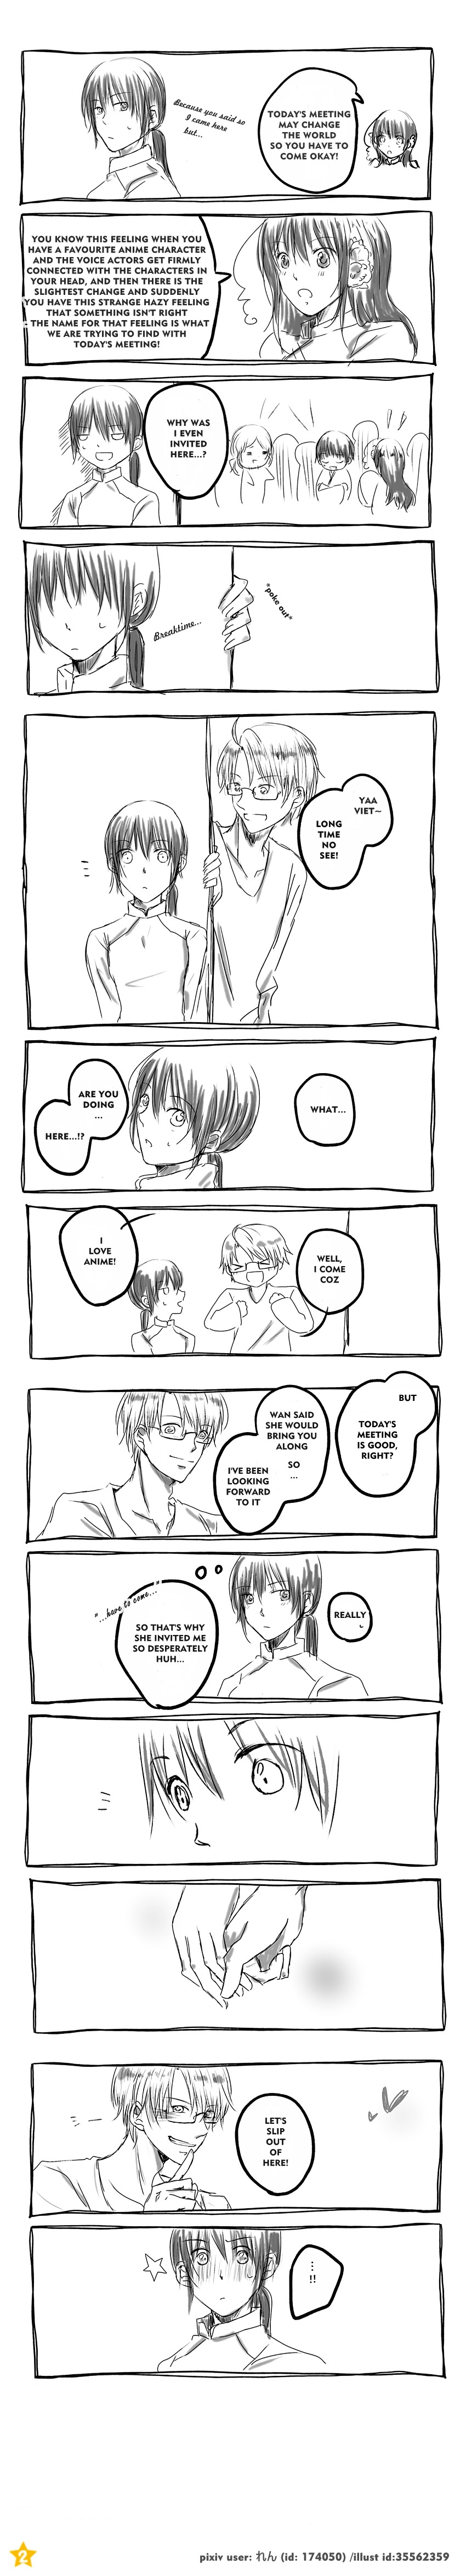 """Alfred, you sly boy :"""") Vietnam and America comic strip: APH Ameviet forever babe!"""